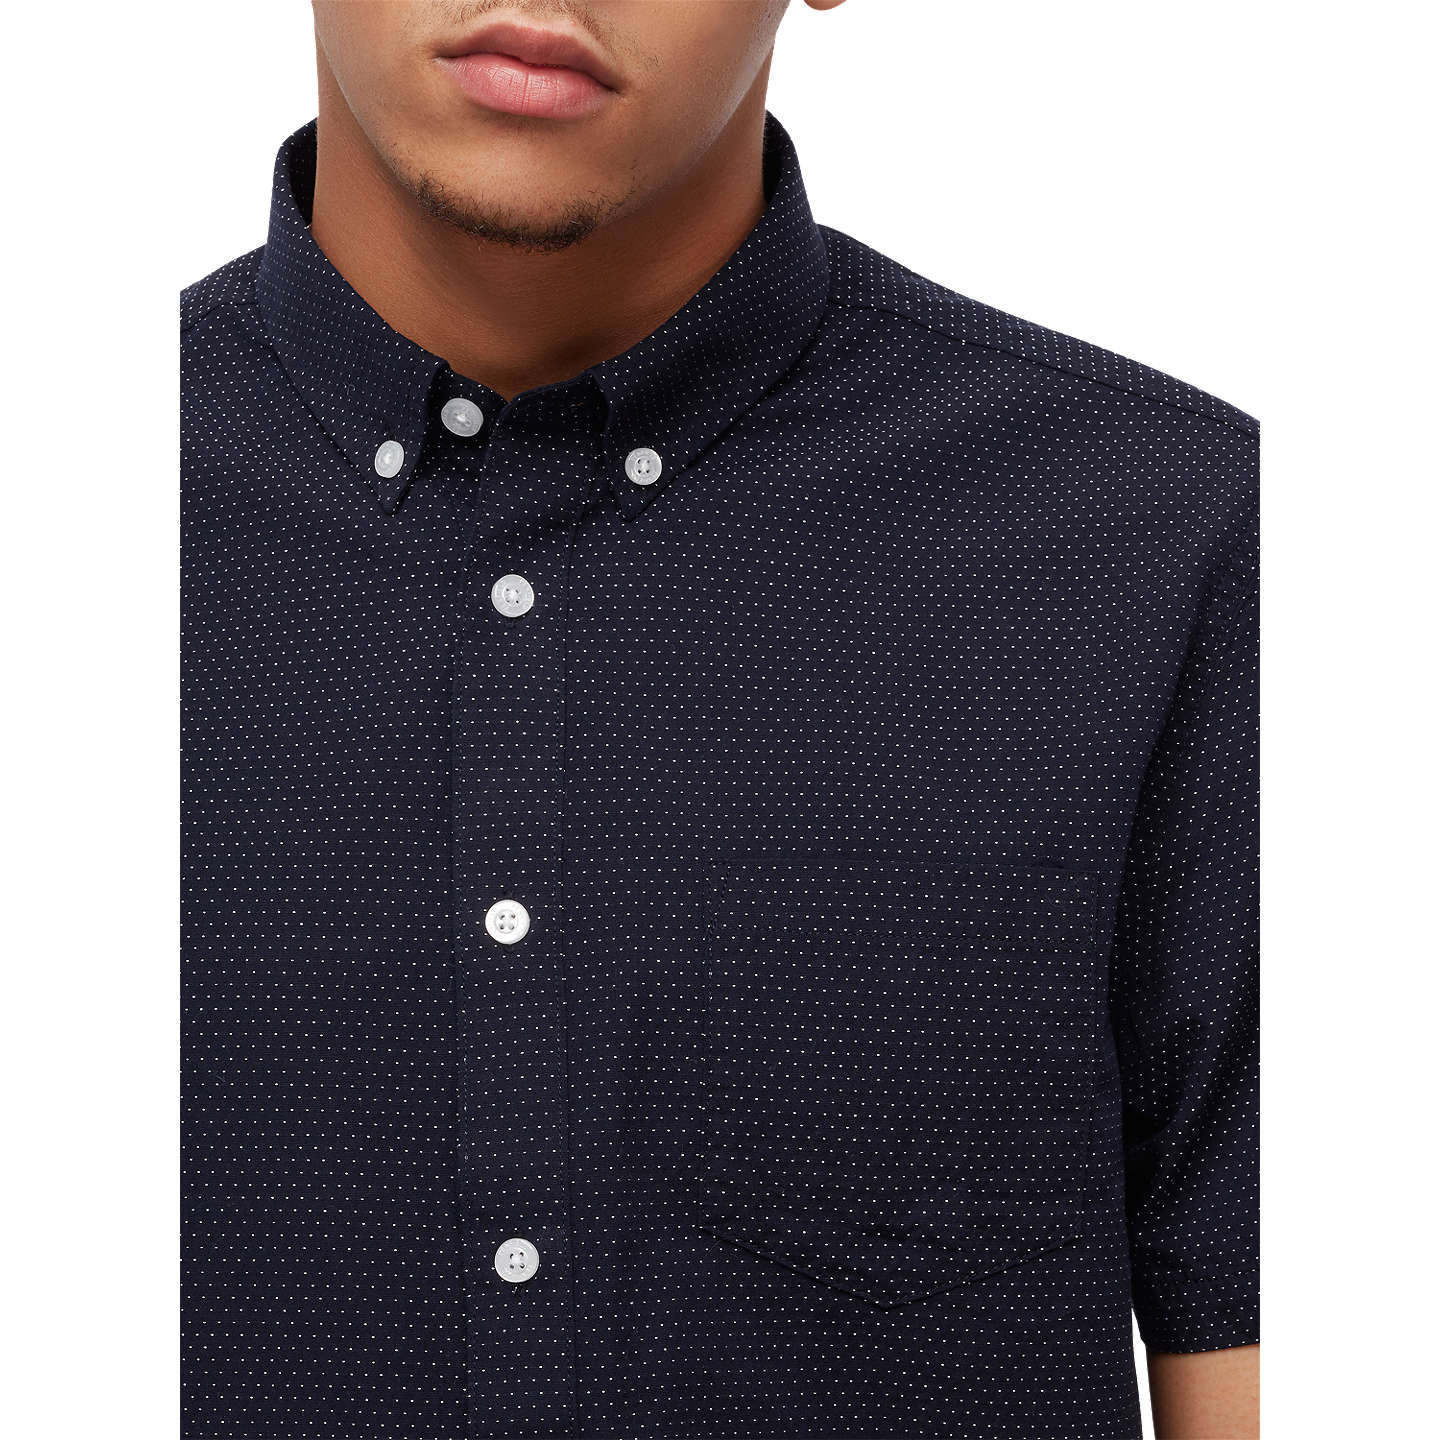 BuyPenfield Retford Printed Short Sleeve Shirt, Navy, S Online at johnlewis.com